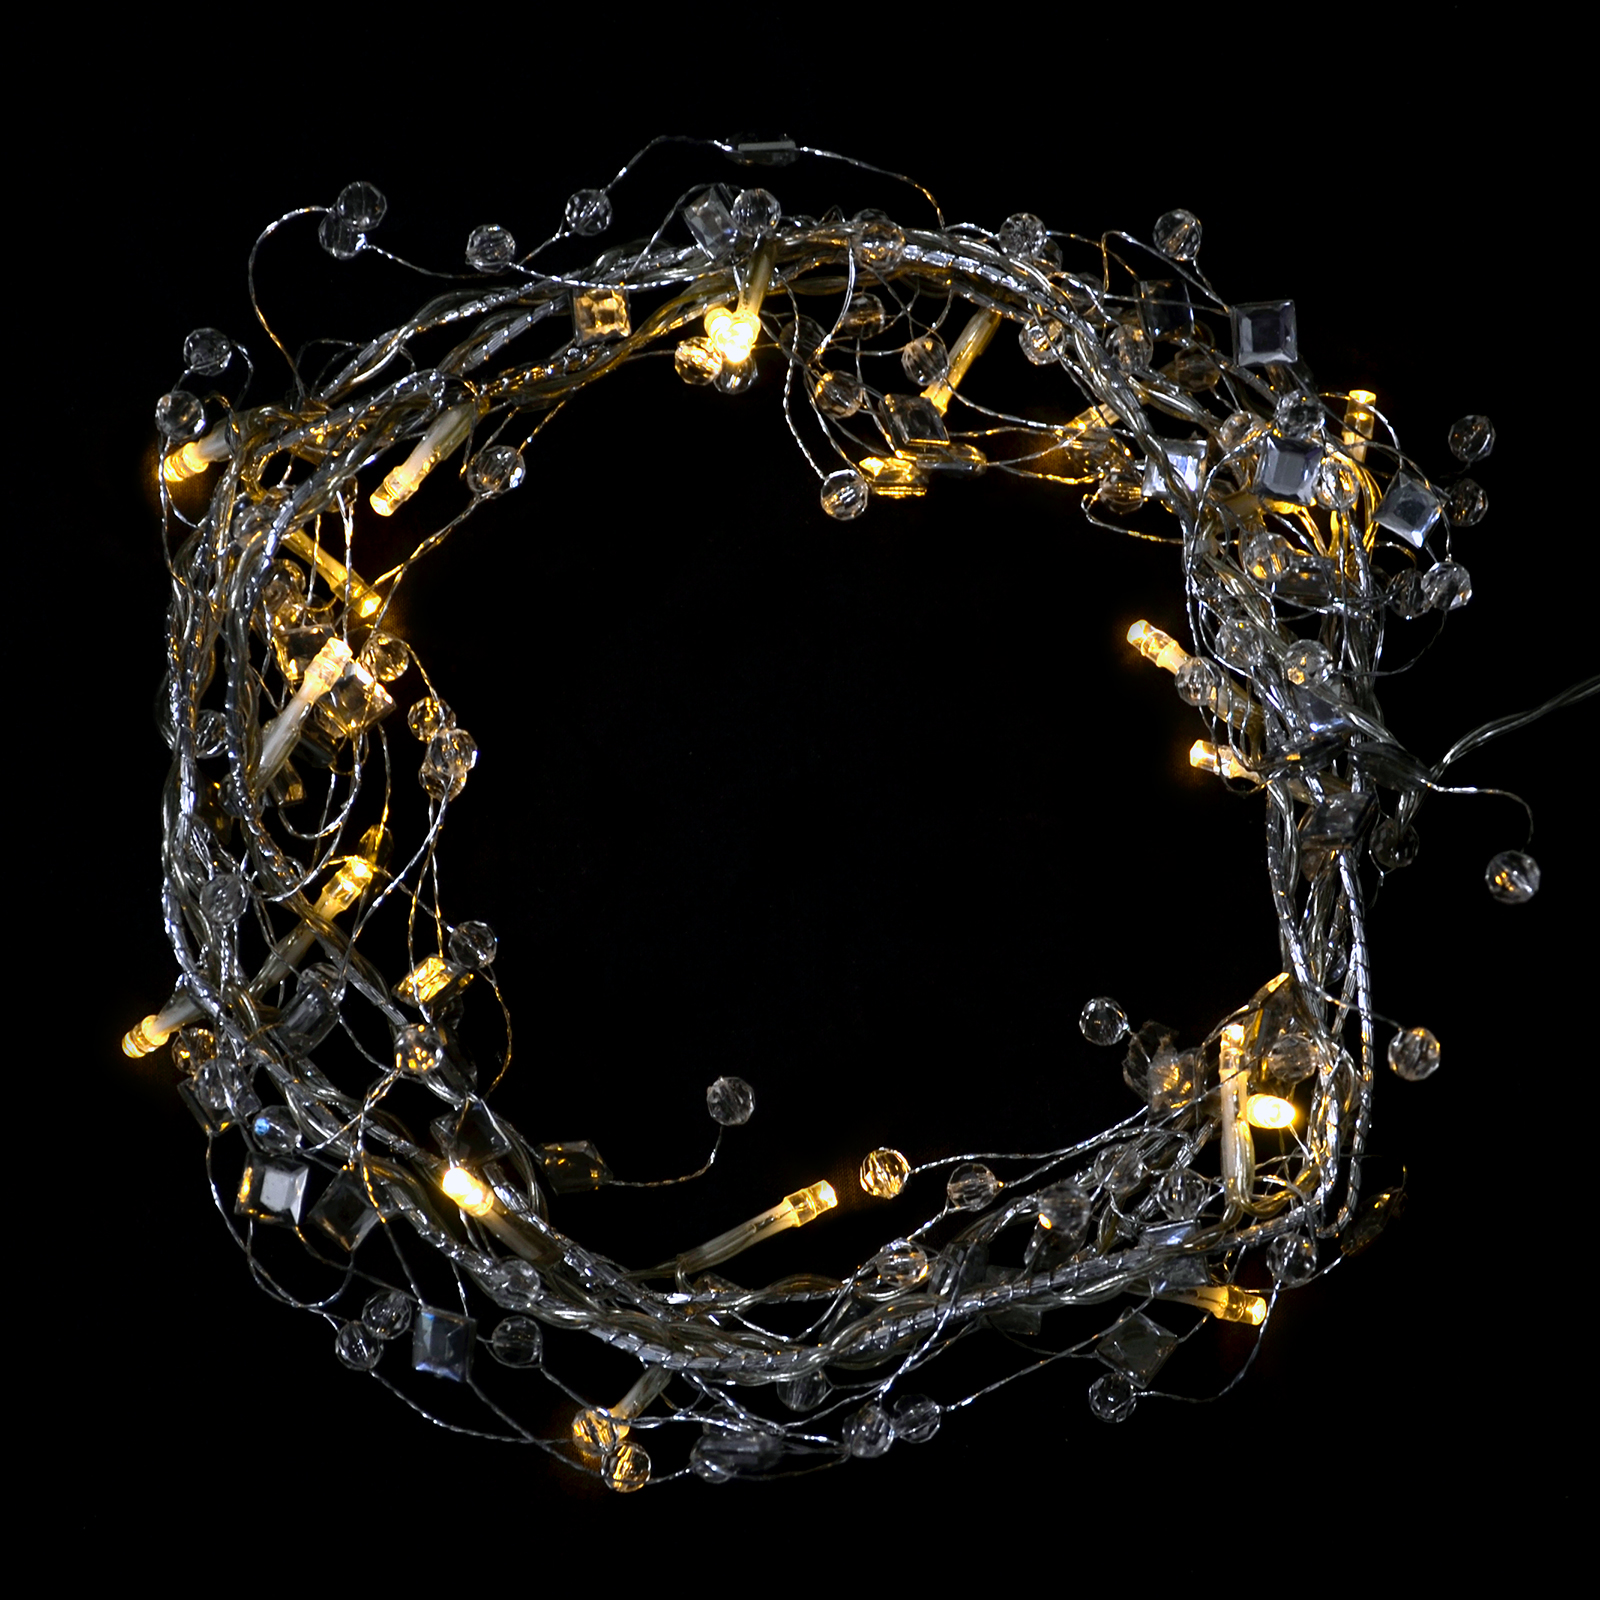 Christmas Garland String Lights : 20 LED Lights Garland String Crystal Beads Flower Leaf Christmas Battery Home eBay